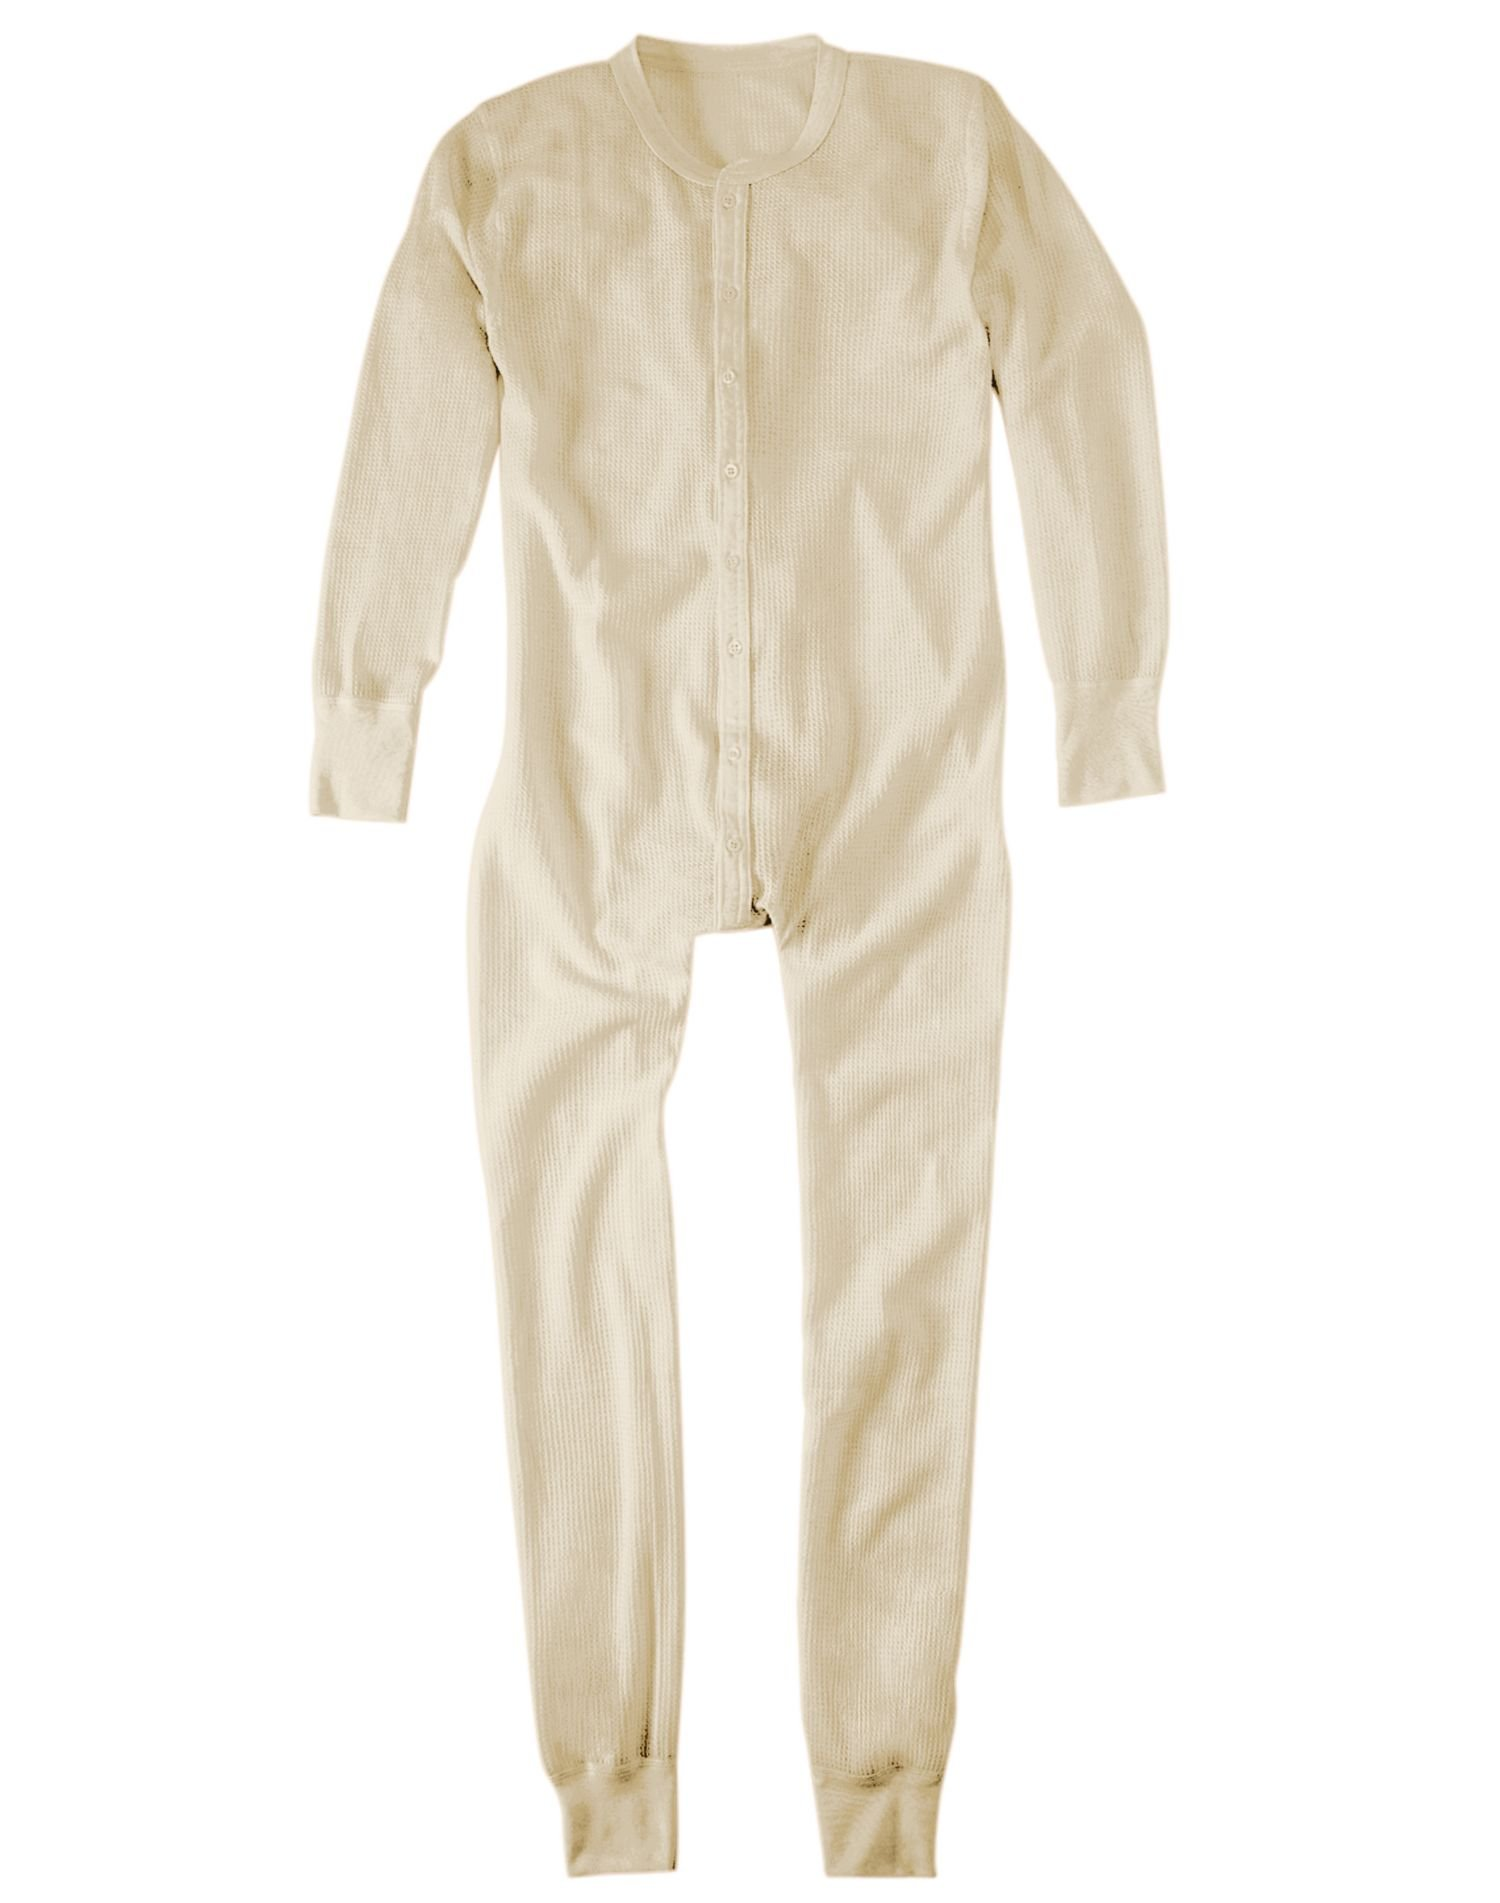 Hanes Men's X-Temp™ Thermal Union Suit by Hanes